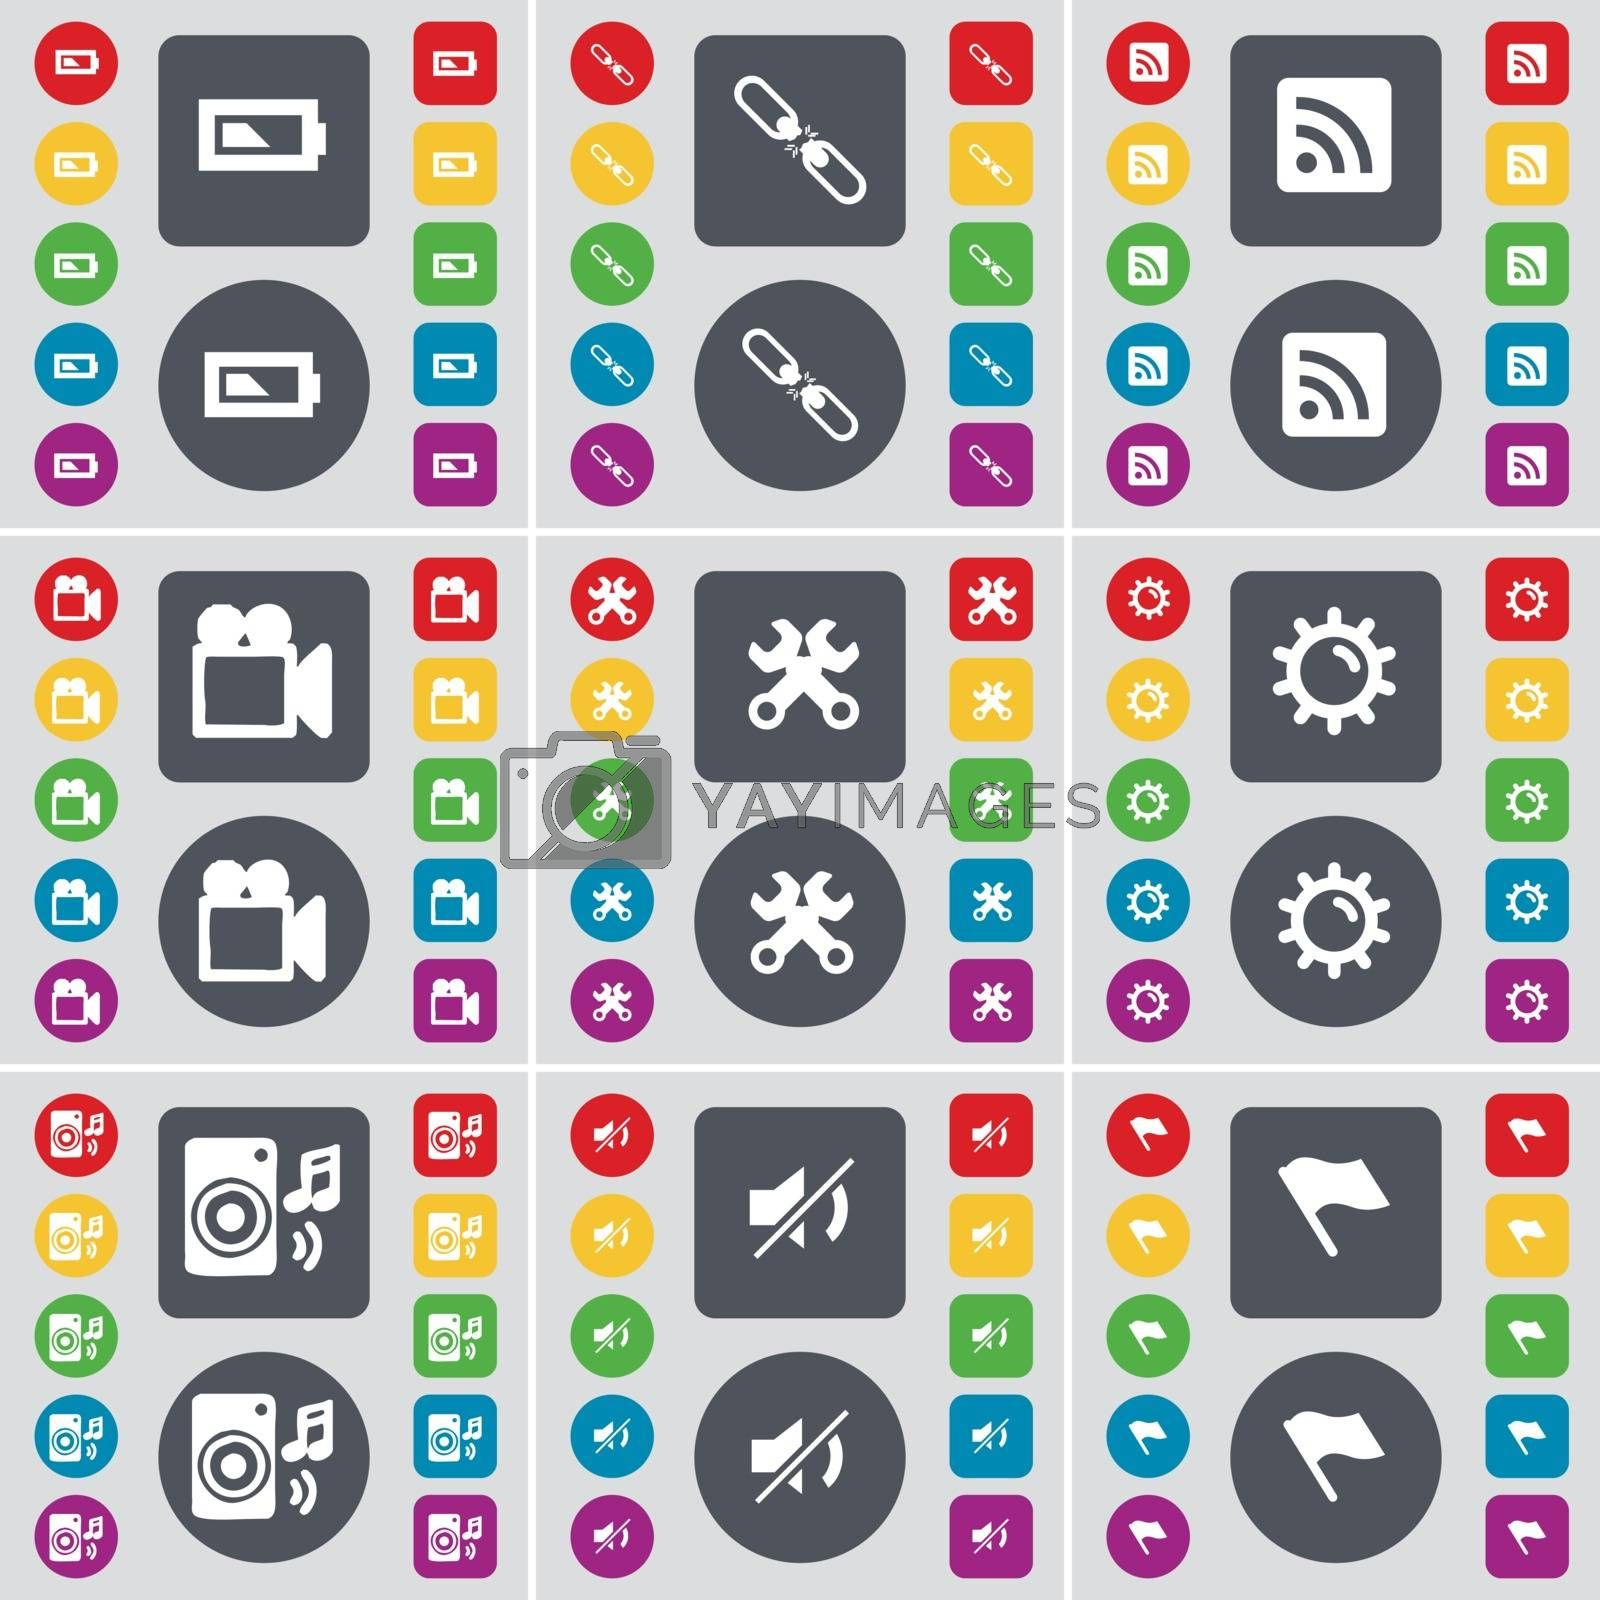 Royalty free image of Battery, Link, RSS, Film camera, Wrenches, Gear, Speaker, Mute, Flag tower icon symbol. A large set of flat, colored buttons for your design. Vector by serhii_lohvyniuk